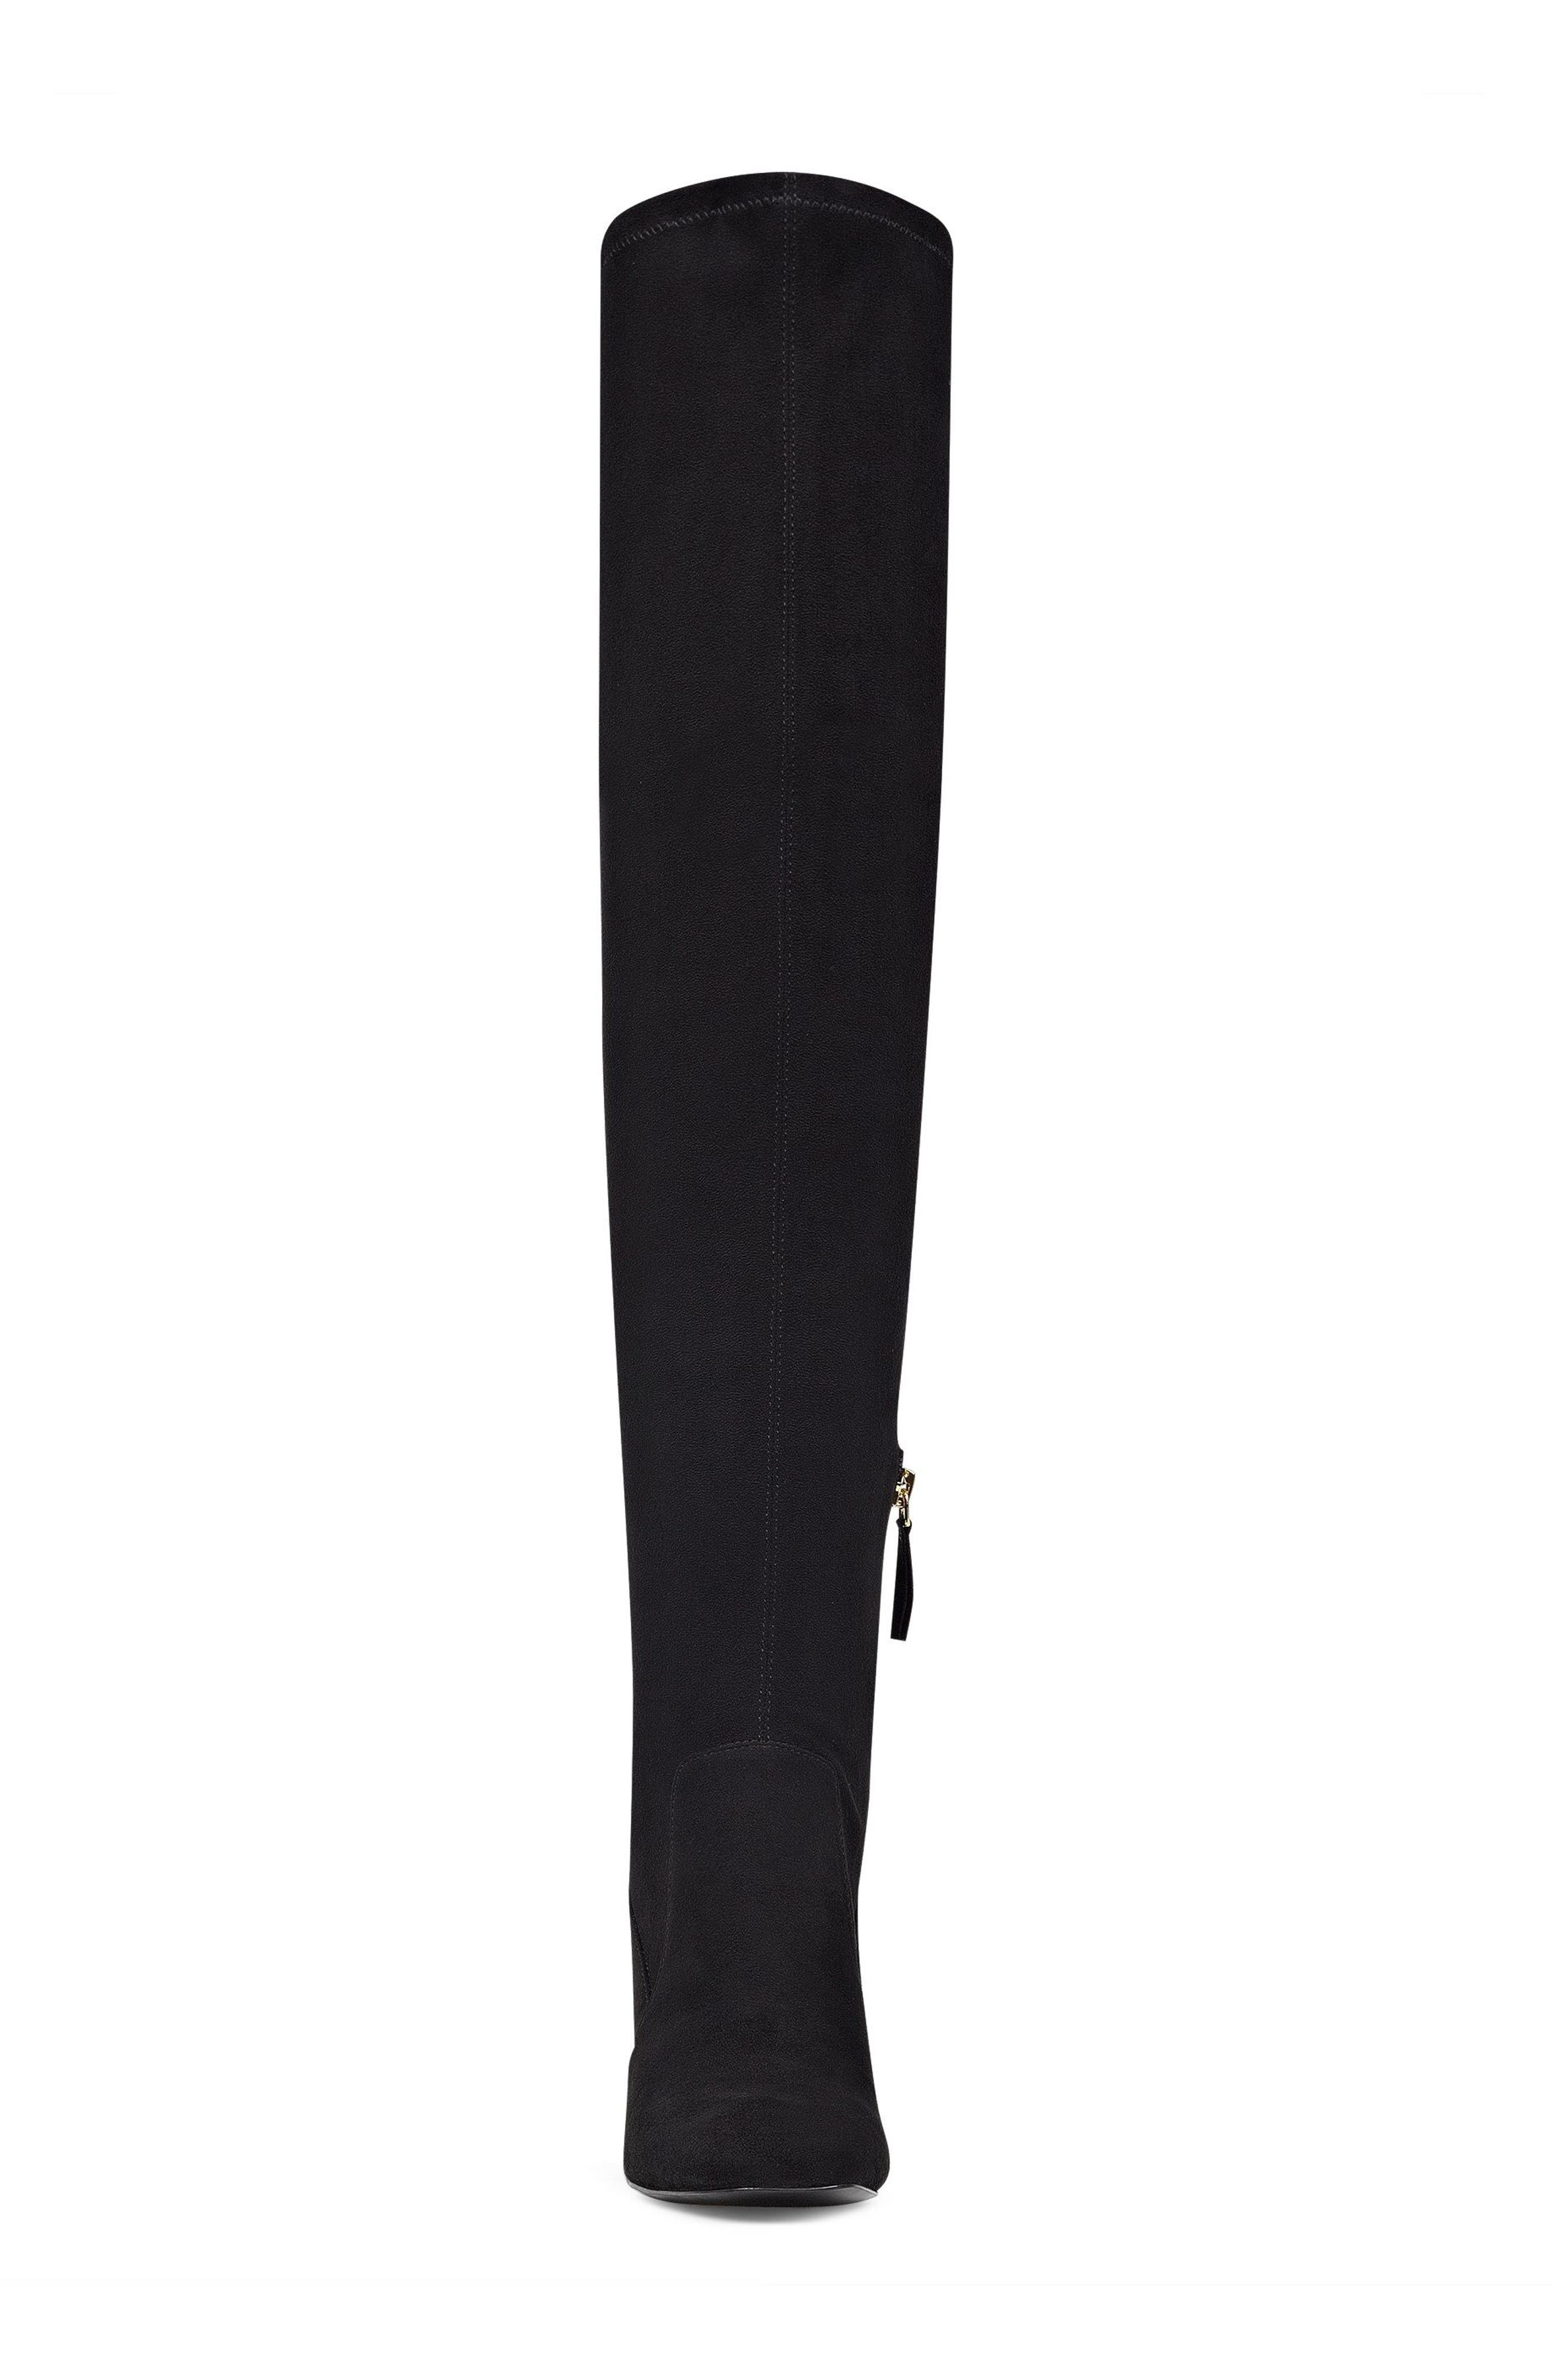 Xperian Over the Knee Boot,                             Alternate thumbnail 4, color,                             001